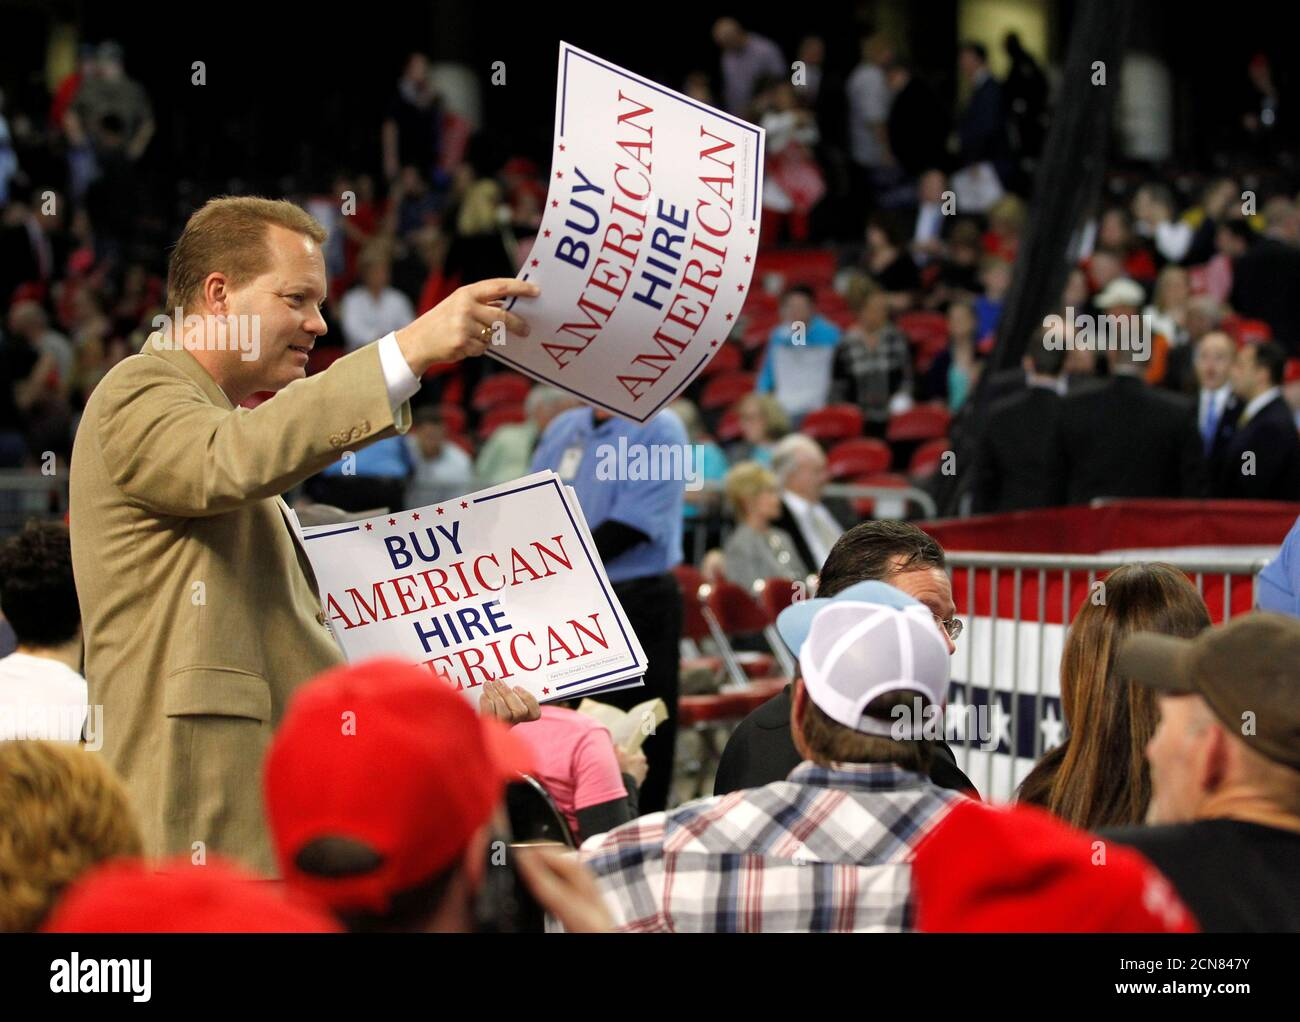 U.S. President Donald Trump campaign staffers pass out posters to fans as they wait for his arrival at a campaign stop in Louisville, Kentucky,  March 20, 2017.  REUTERS/John Sommers II Stock Photo